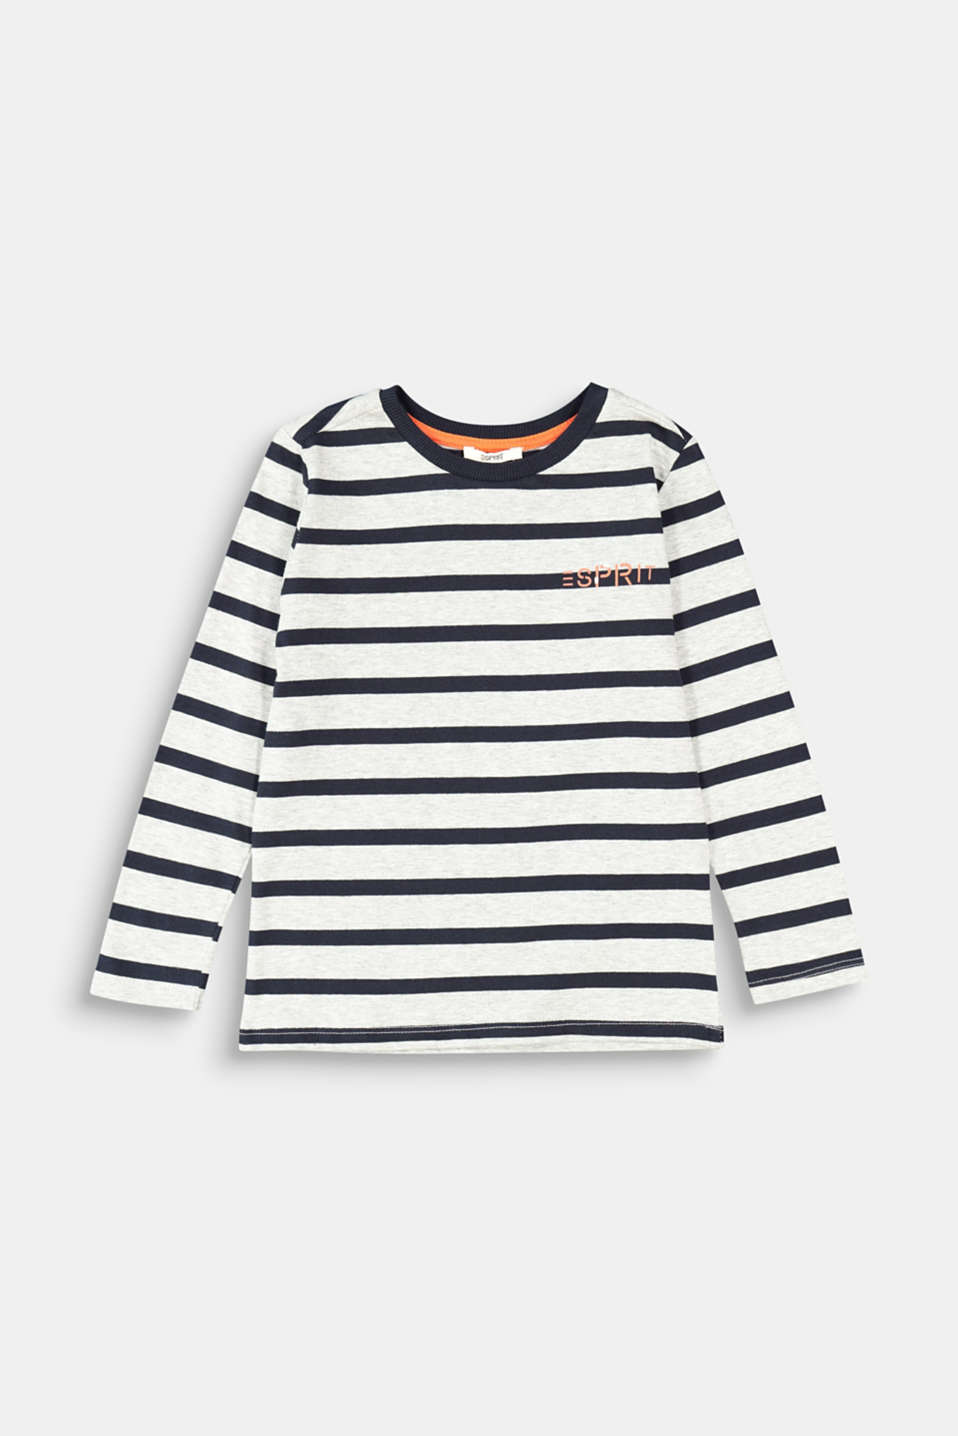 Esprit - Striped long sleeve top, 100% cotton